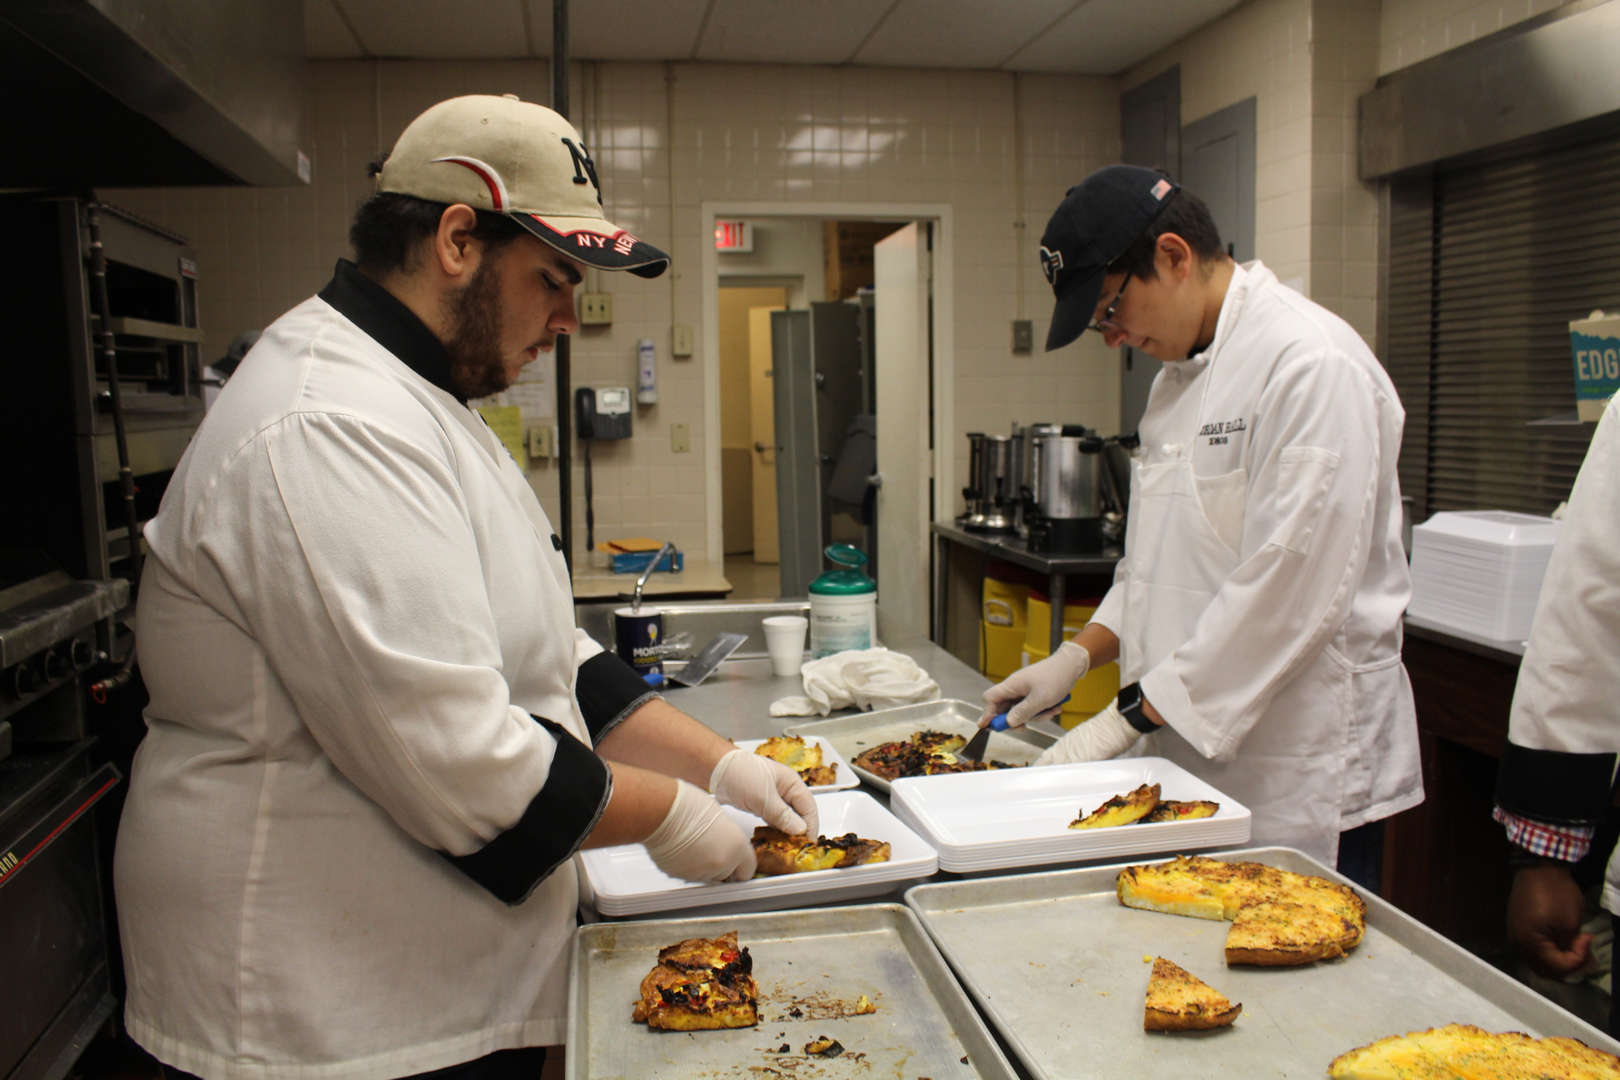 Culinary students work in the kitchen plating food